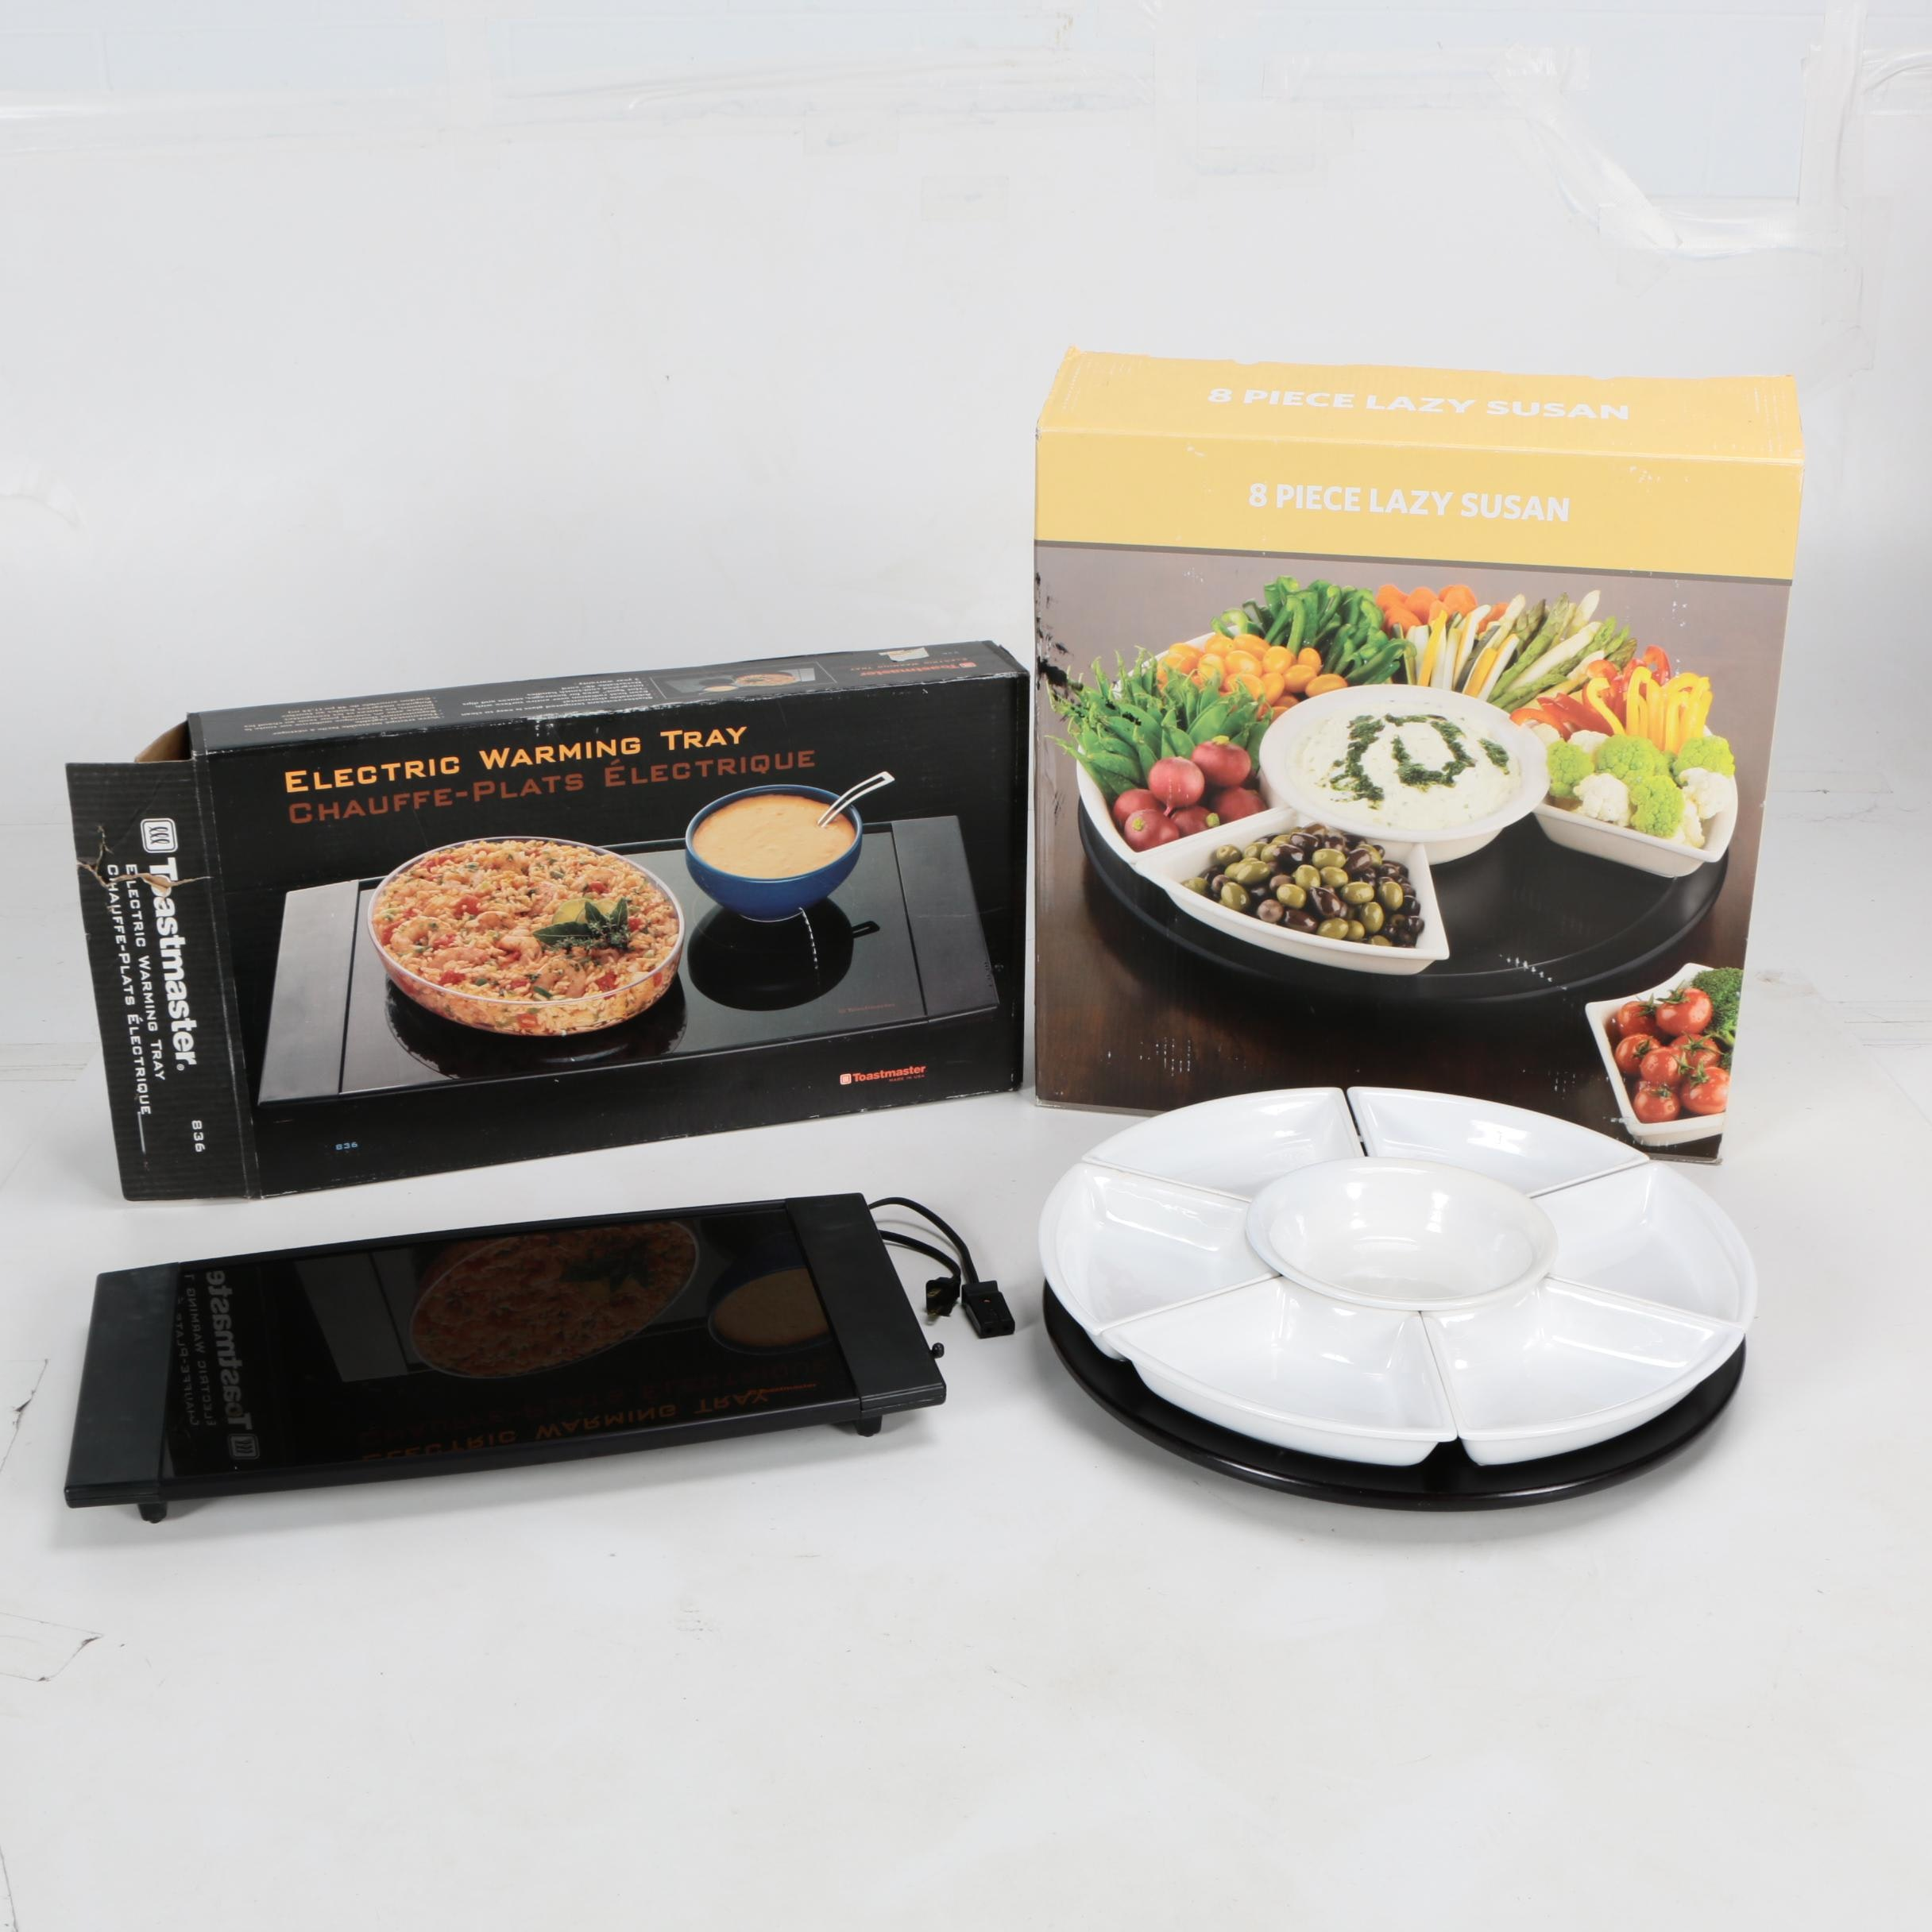 Toastmaster Electric Warming Tray and Ceramic Lazy Susan Serving Set